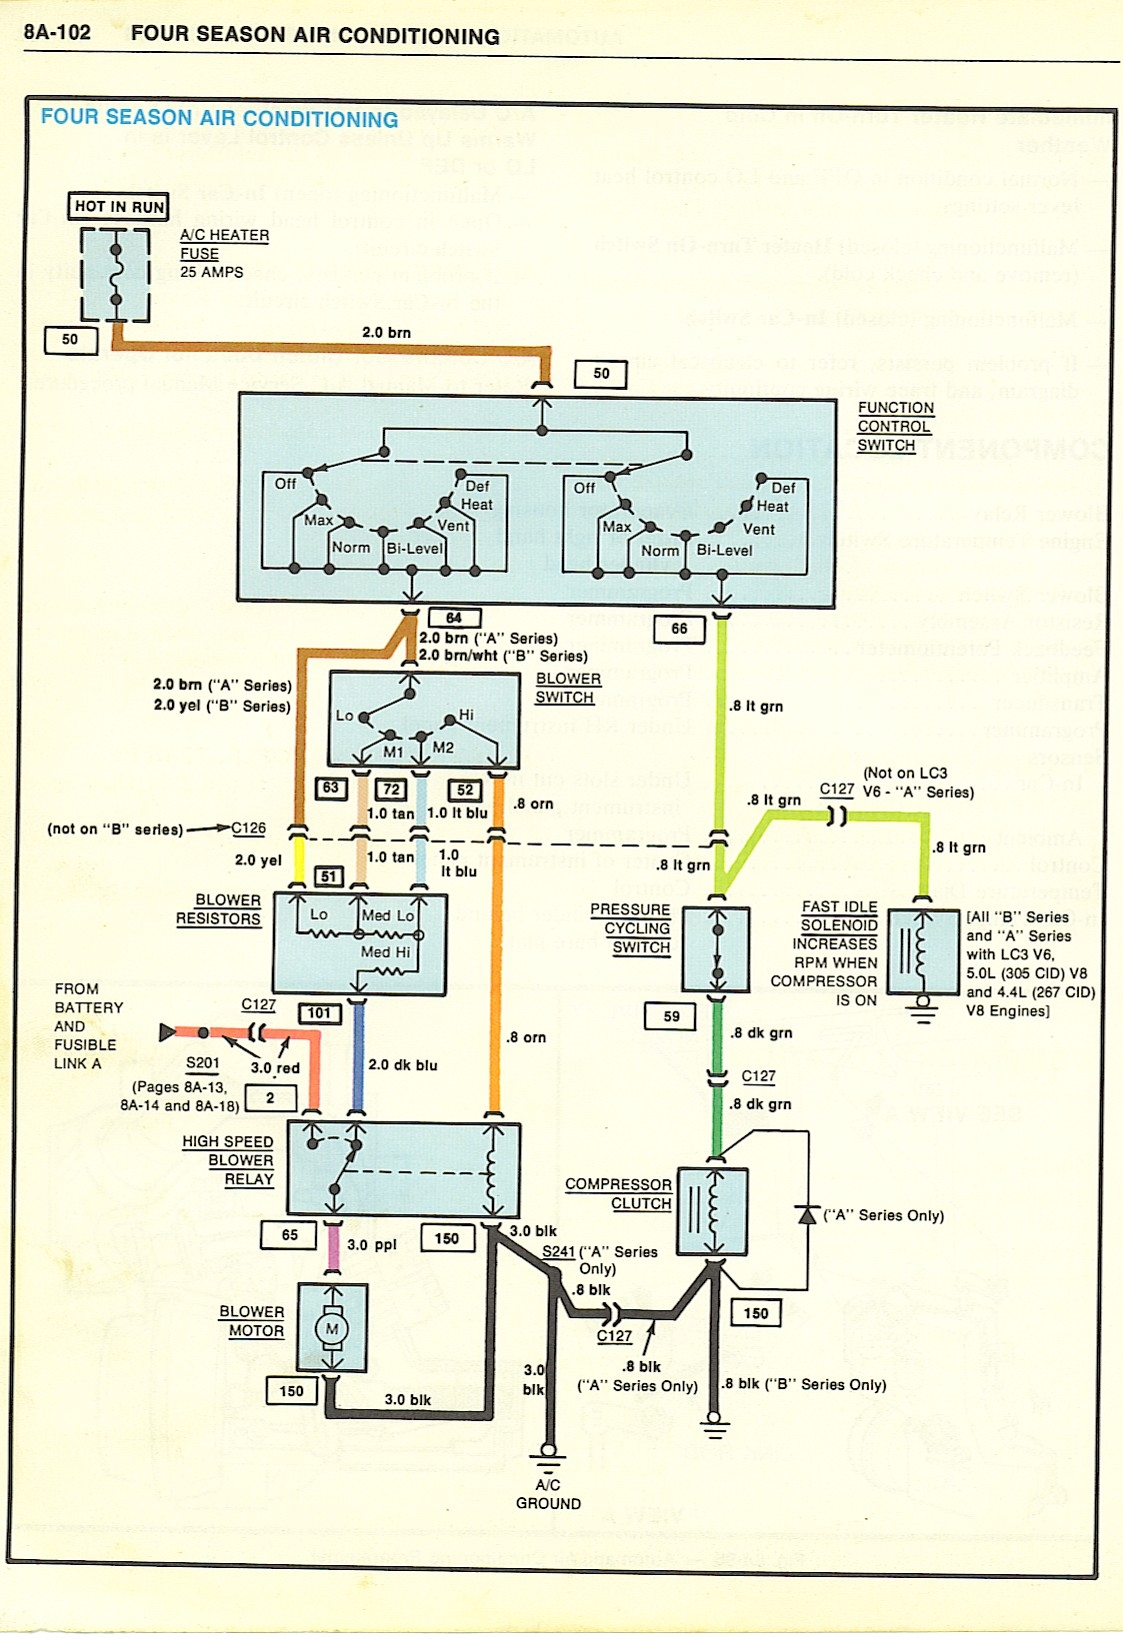 1968 Impala Ac Wiring Diagram Mastering For 68 Chevy Diagrams Rh Wizard Com Gas Gage Turn Signal Switch